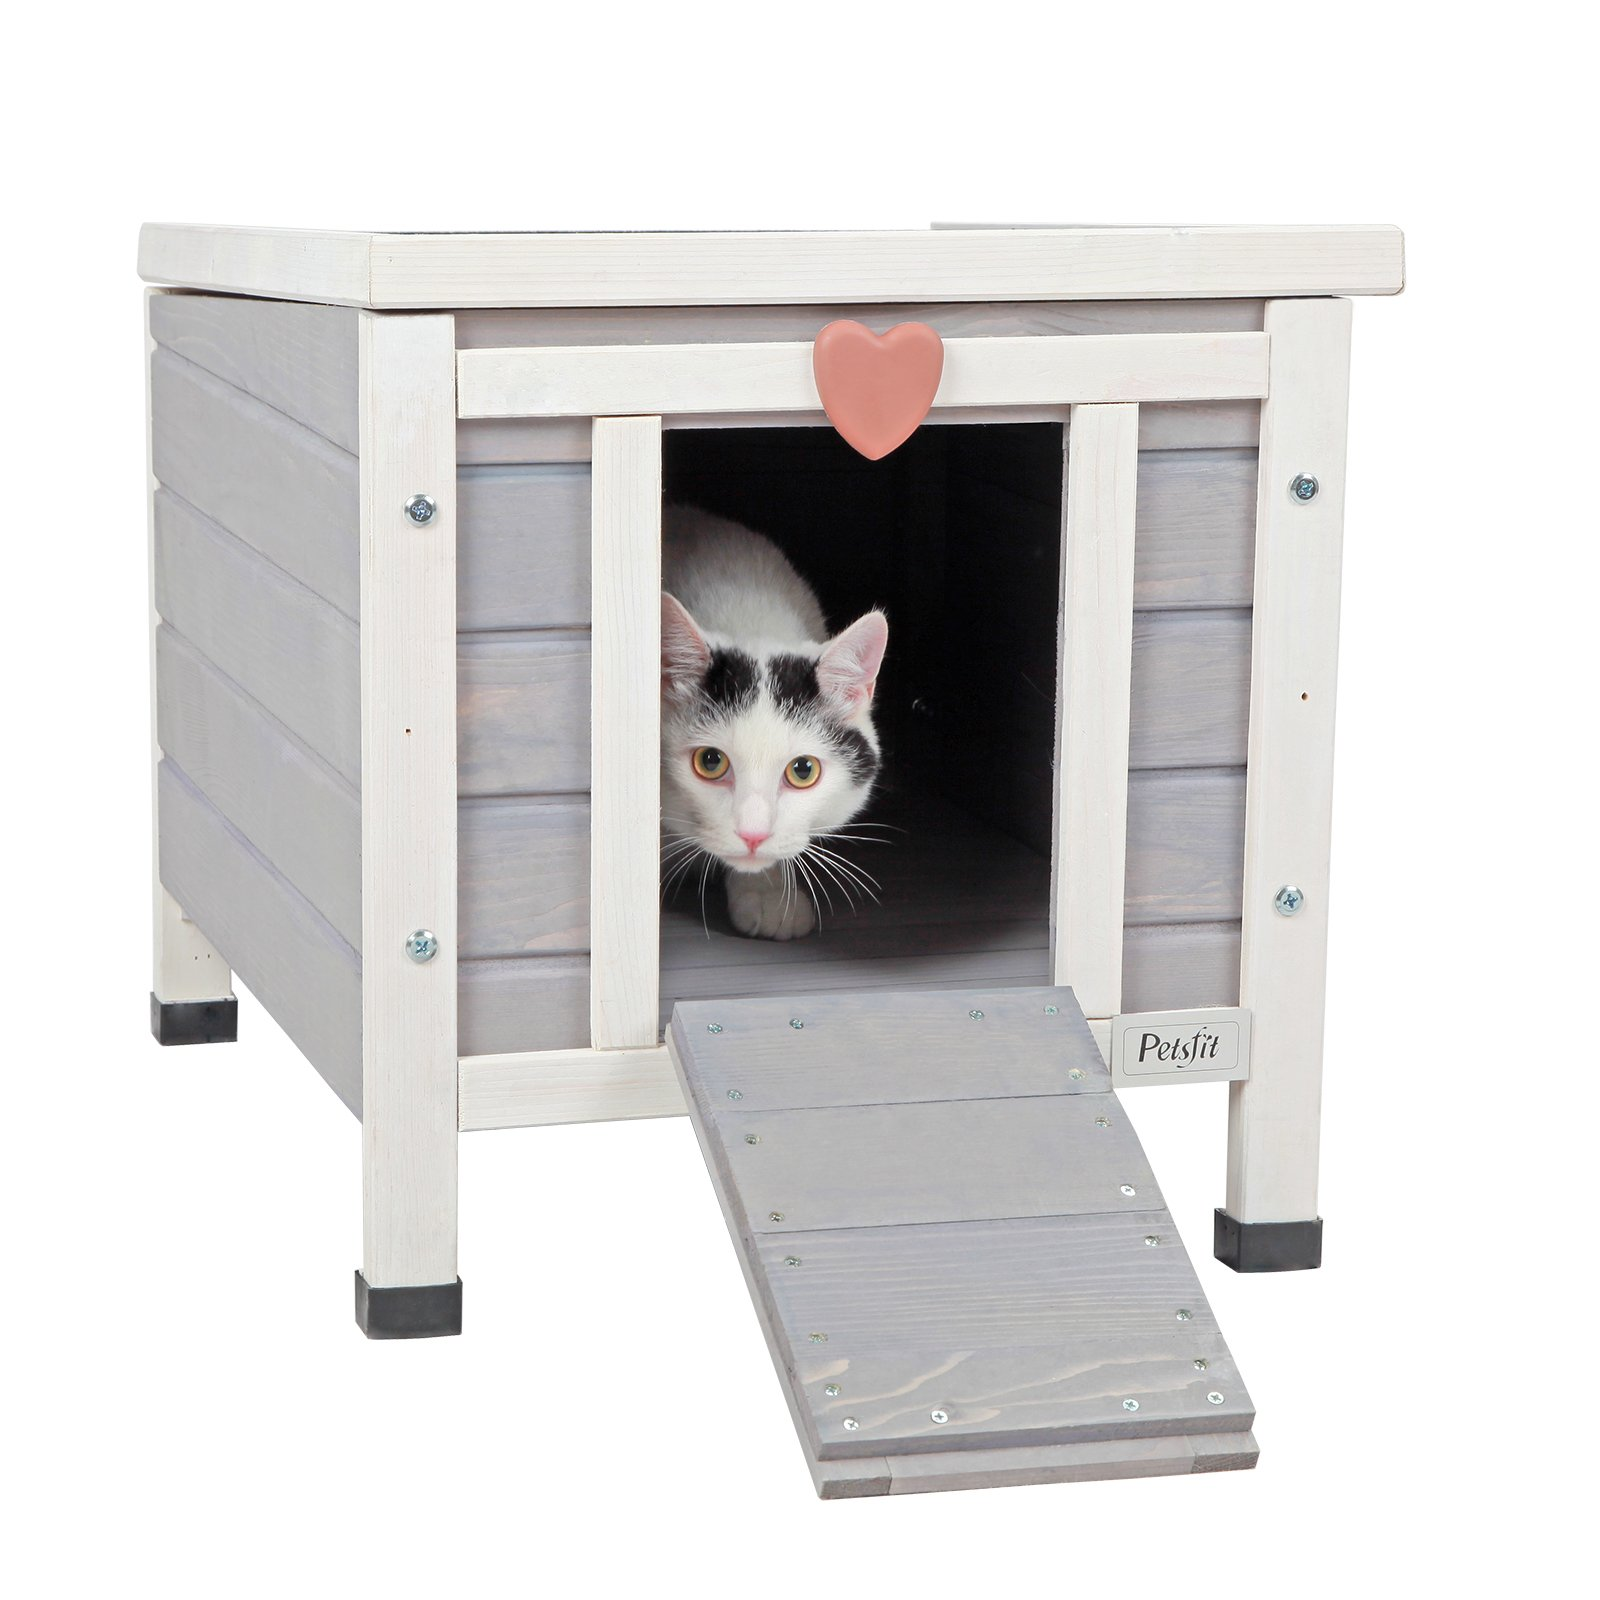 Petsfit Outdoor/Indoor Cat House,Ideal Cat Condo,Weatherproof Cat Shelter 16'' Wx17 Hx20 D